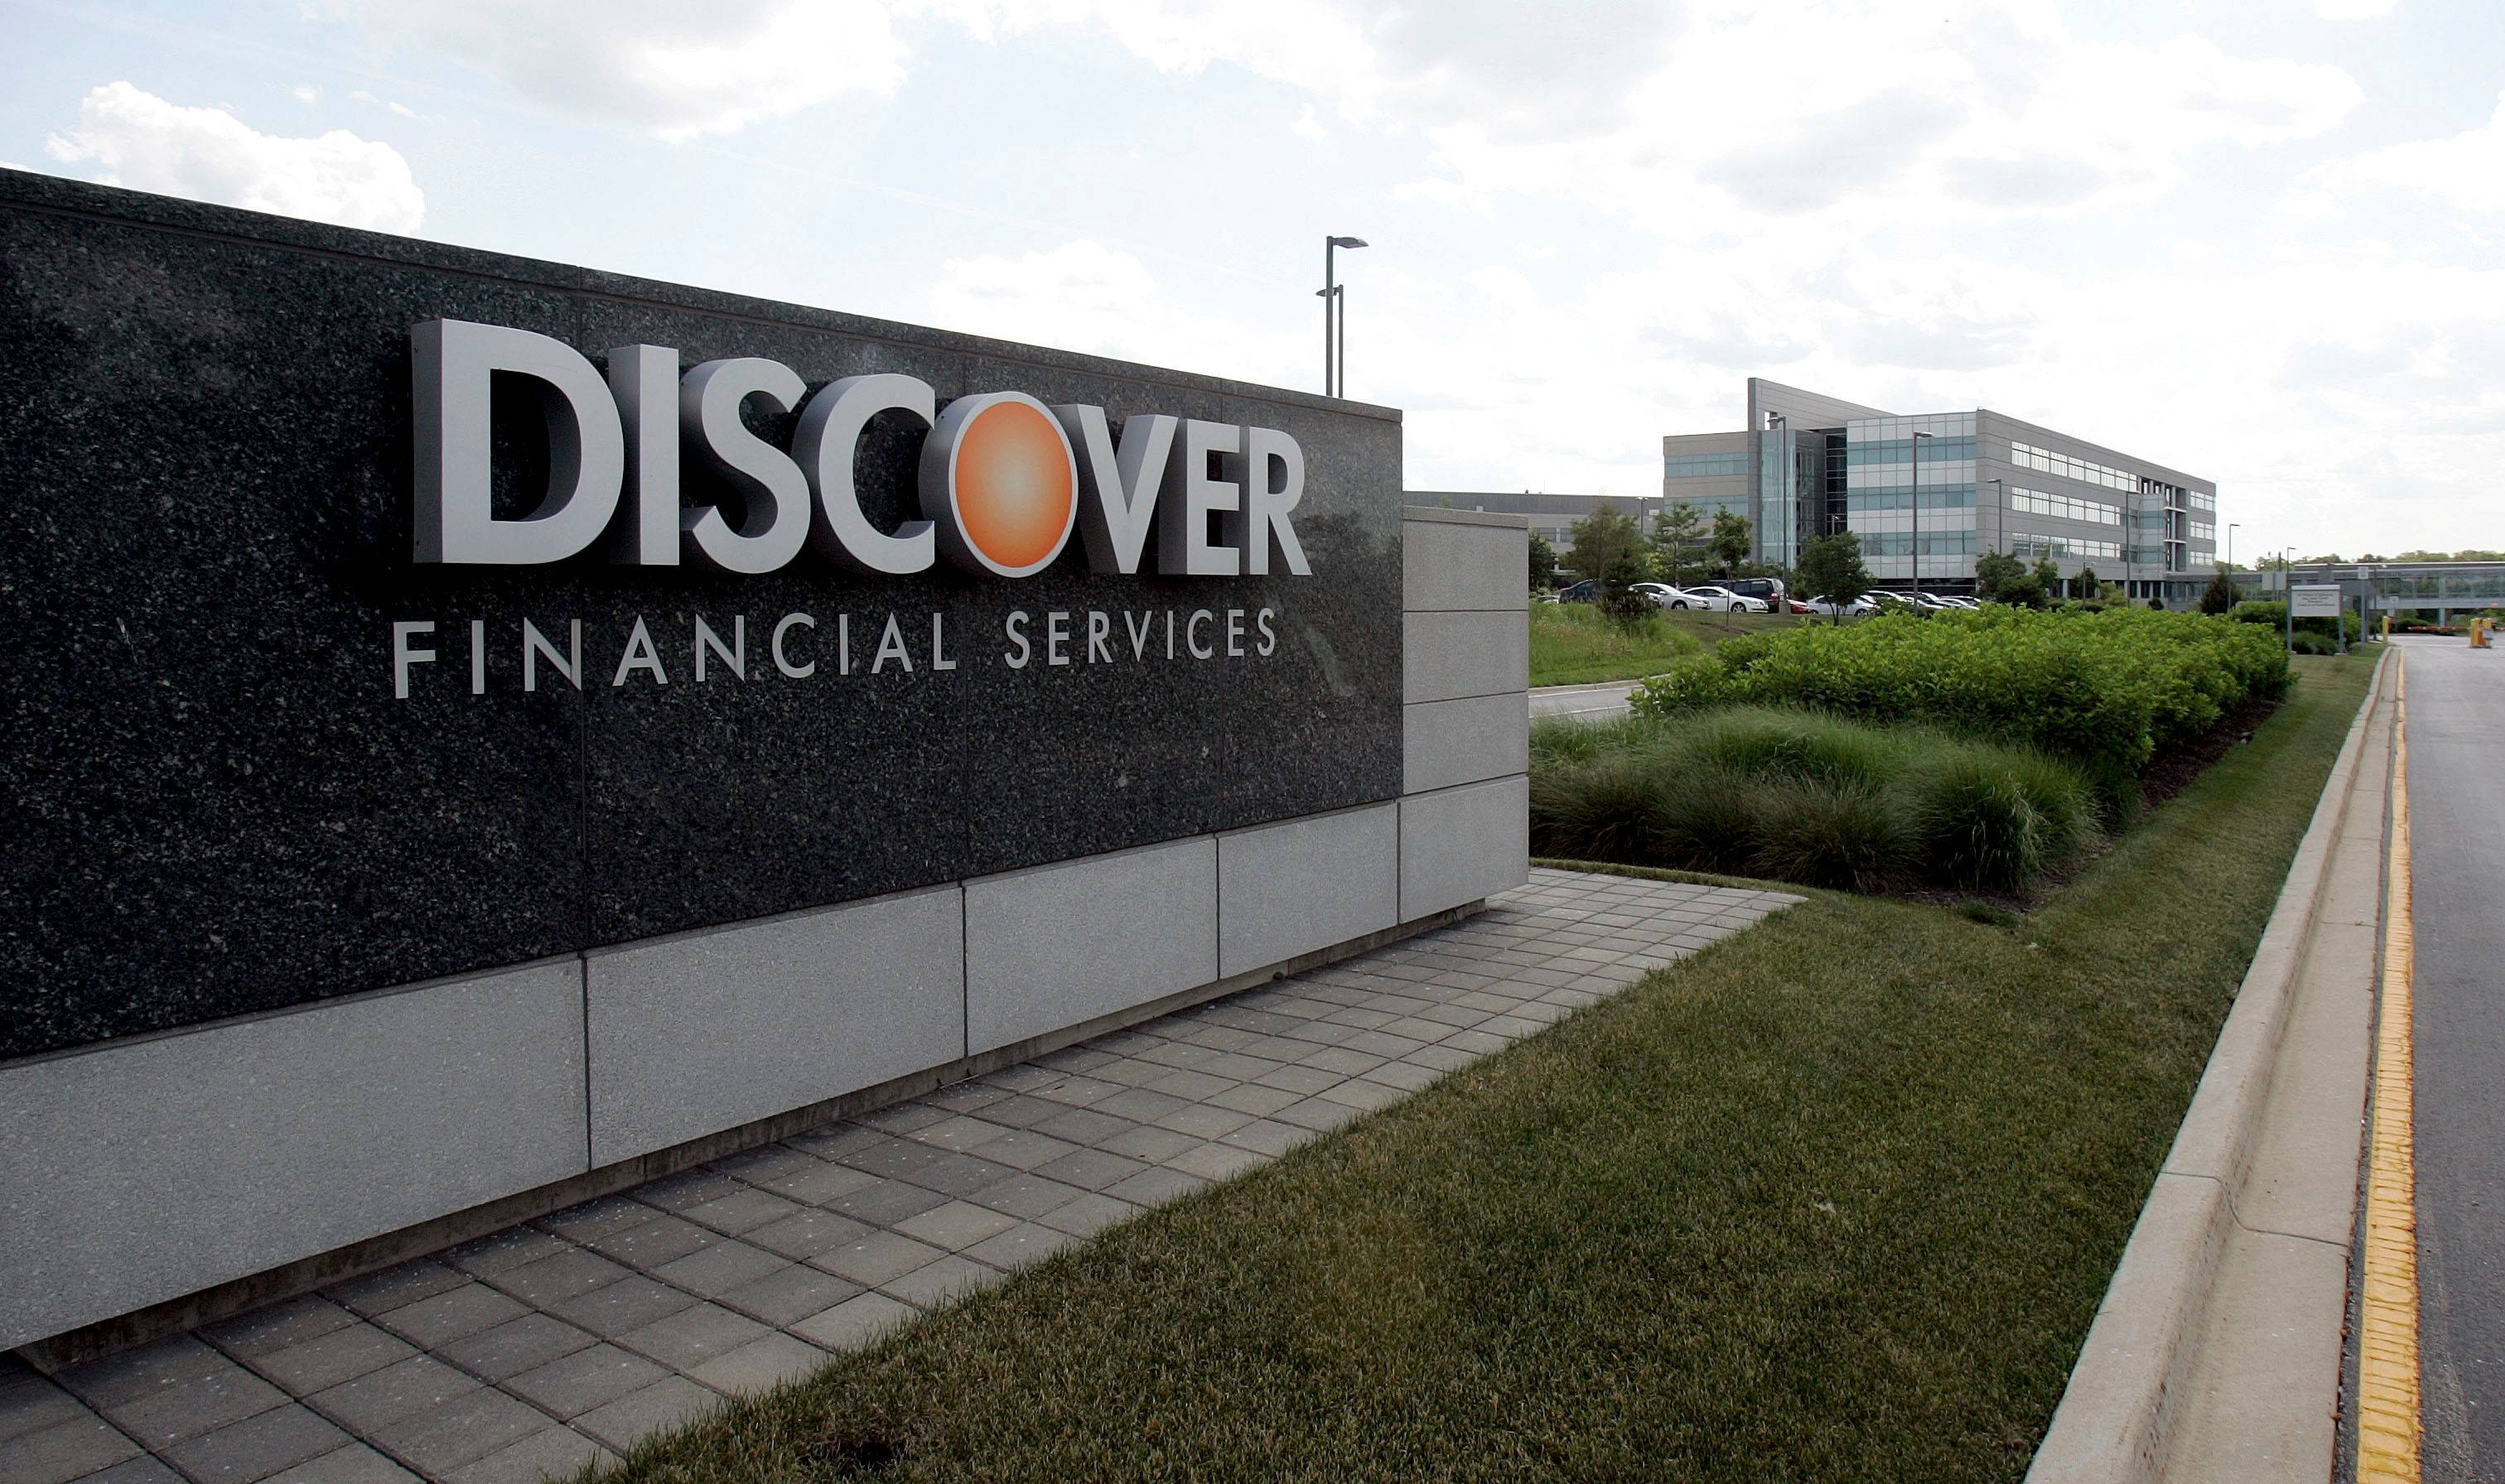 Riverwoods-based Discover Financial Services agreed with regulators to bolster its payment systems against money launderers. No financial penalty was imposed.